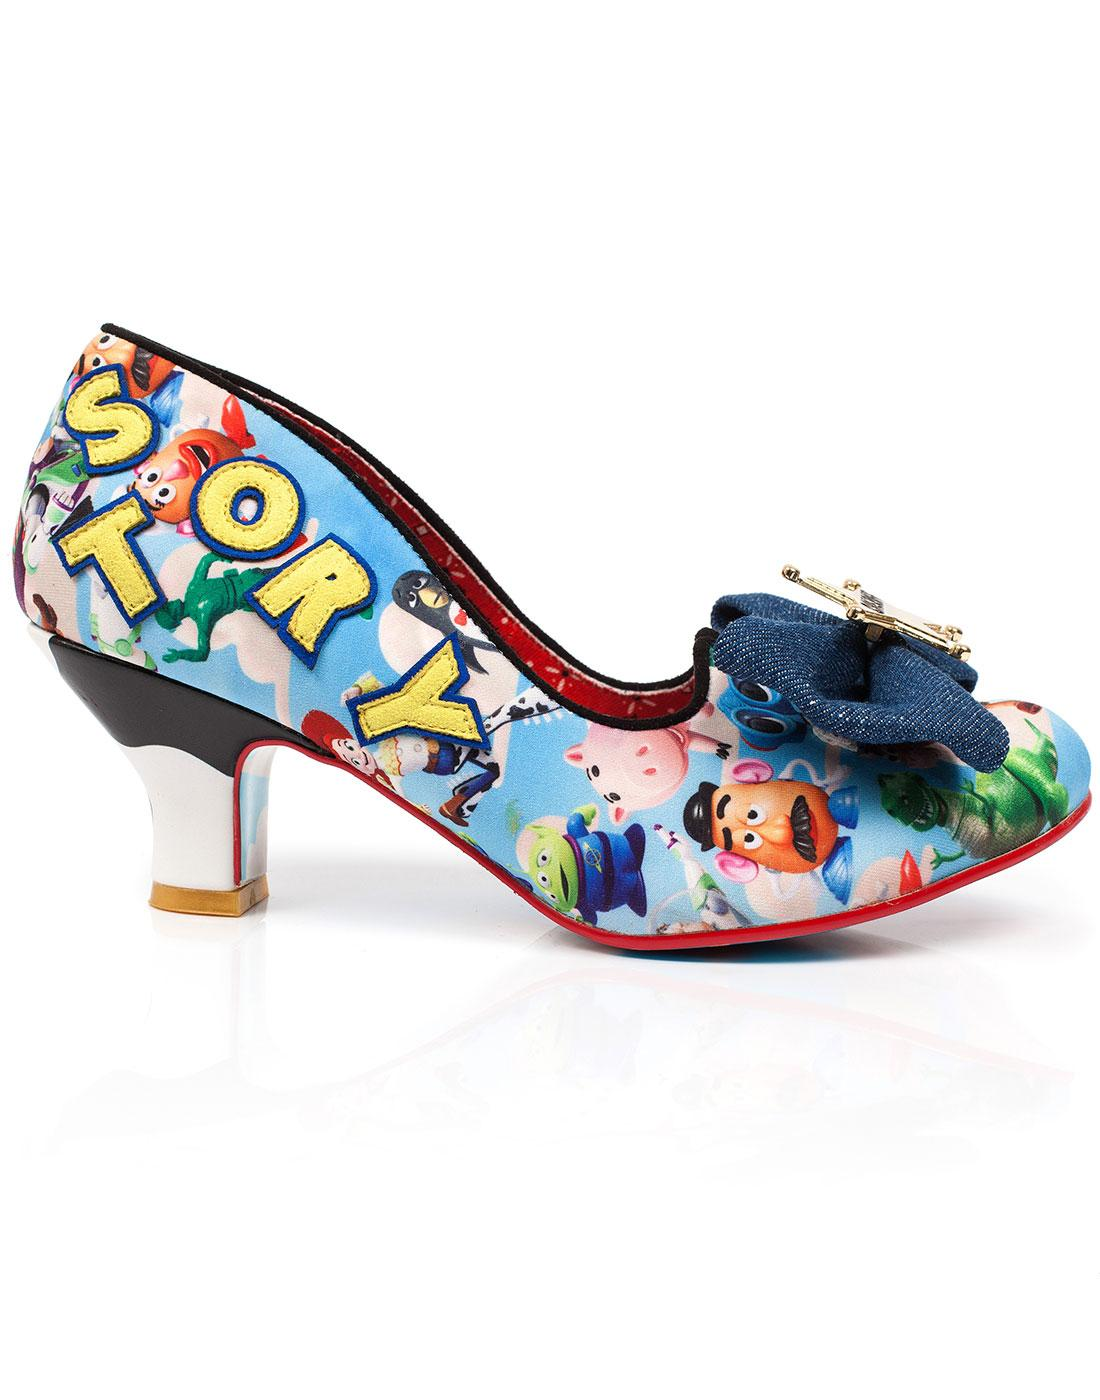 Toy Story Pumps Sherrif Woody 4136-52A